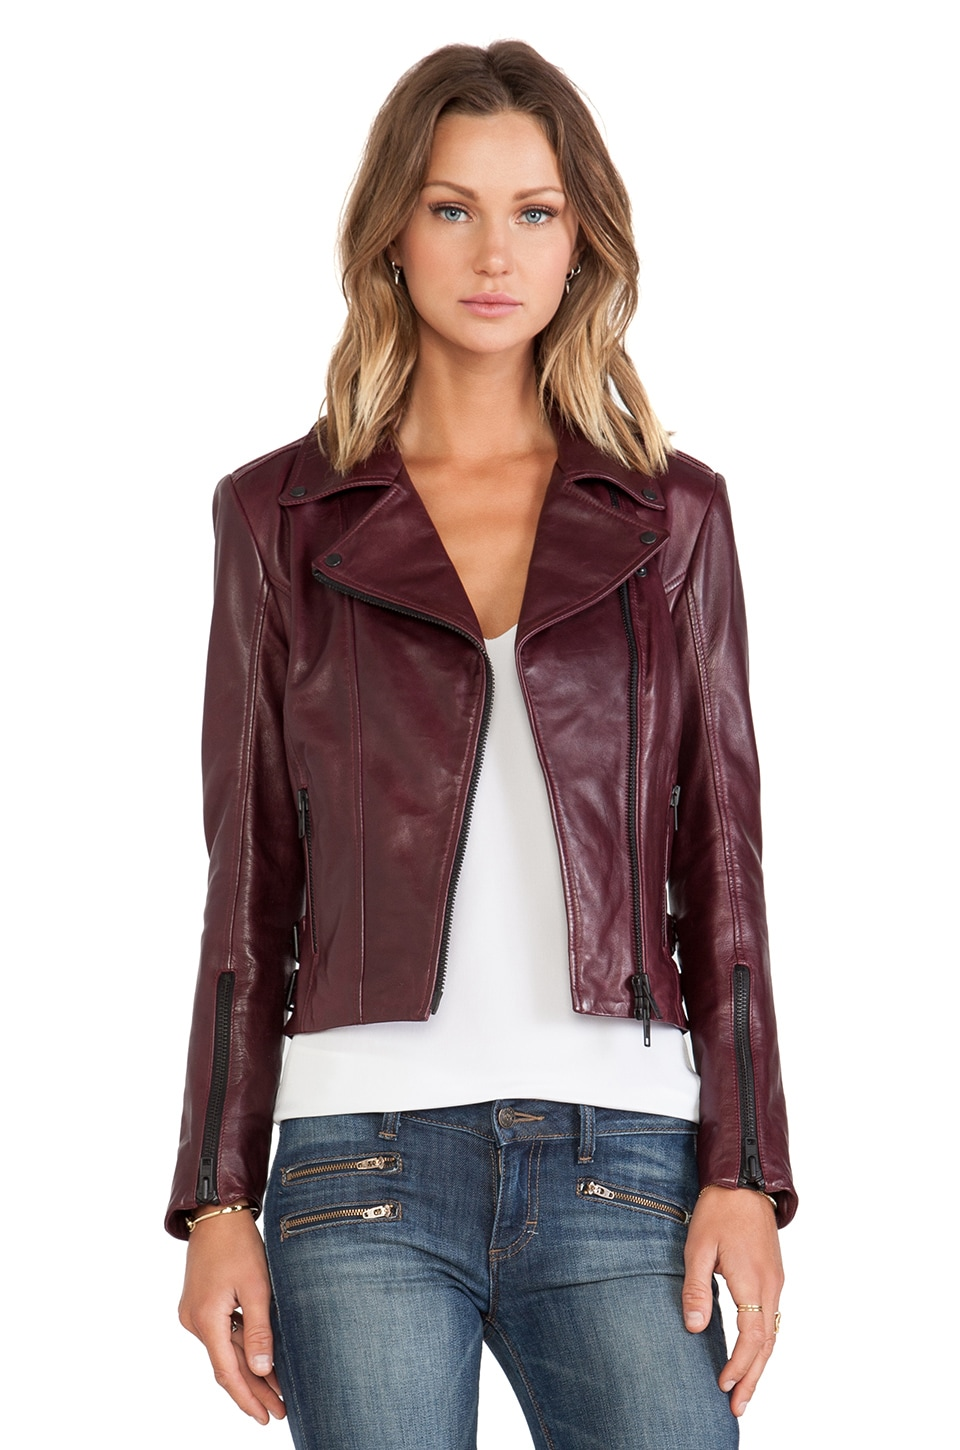 LAMARQUE Joana Jacket in Syrah